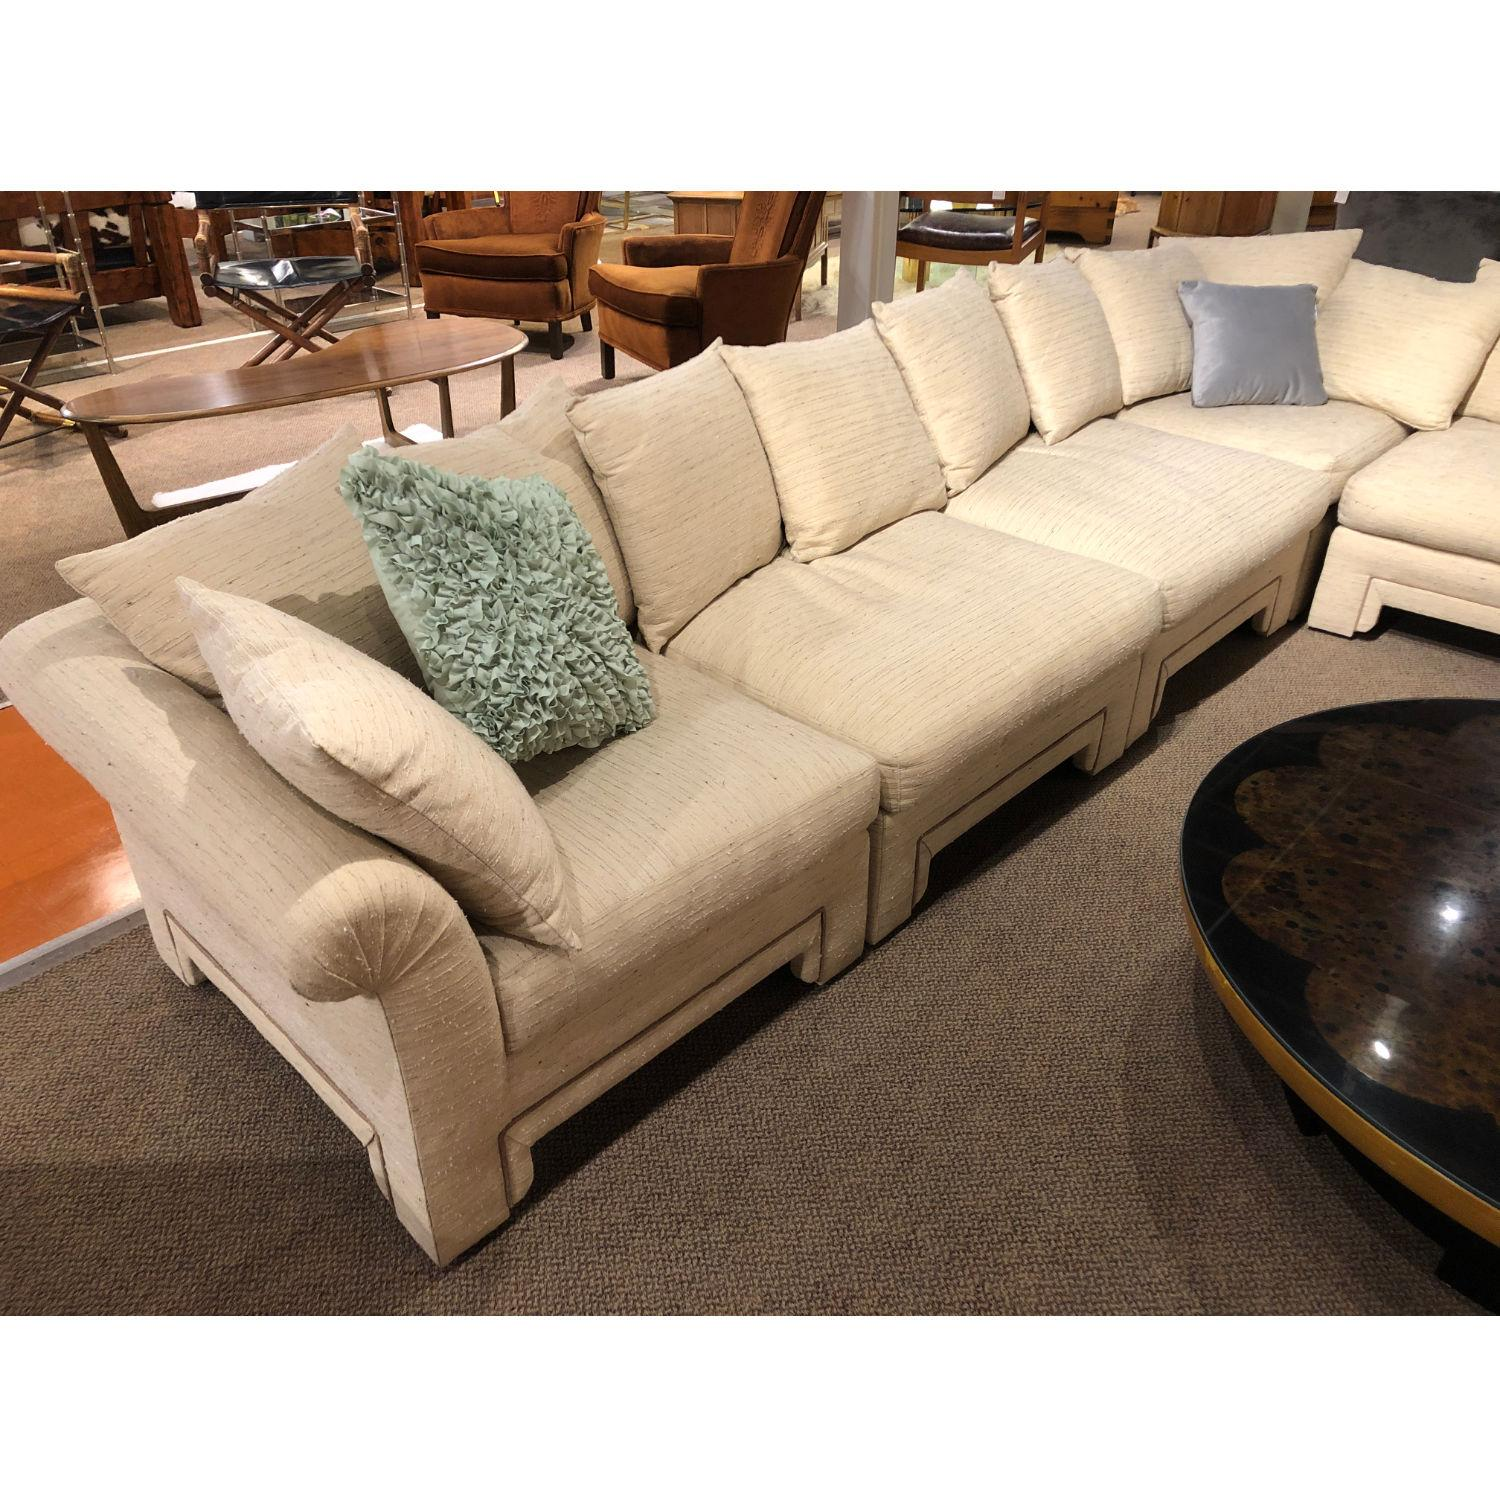 Vintage Drexel Chinoiserie Asian Modern Ivory Sectional Sofa 6 Piece Modular